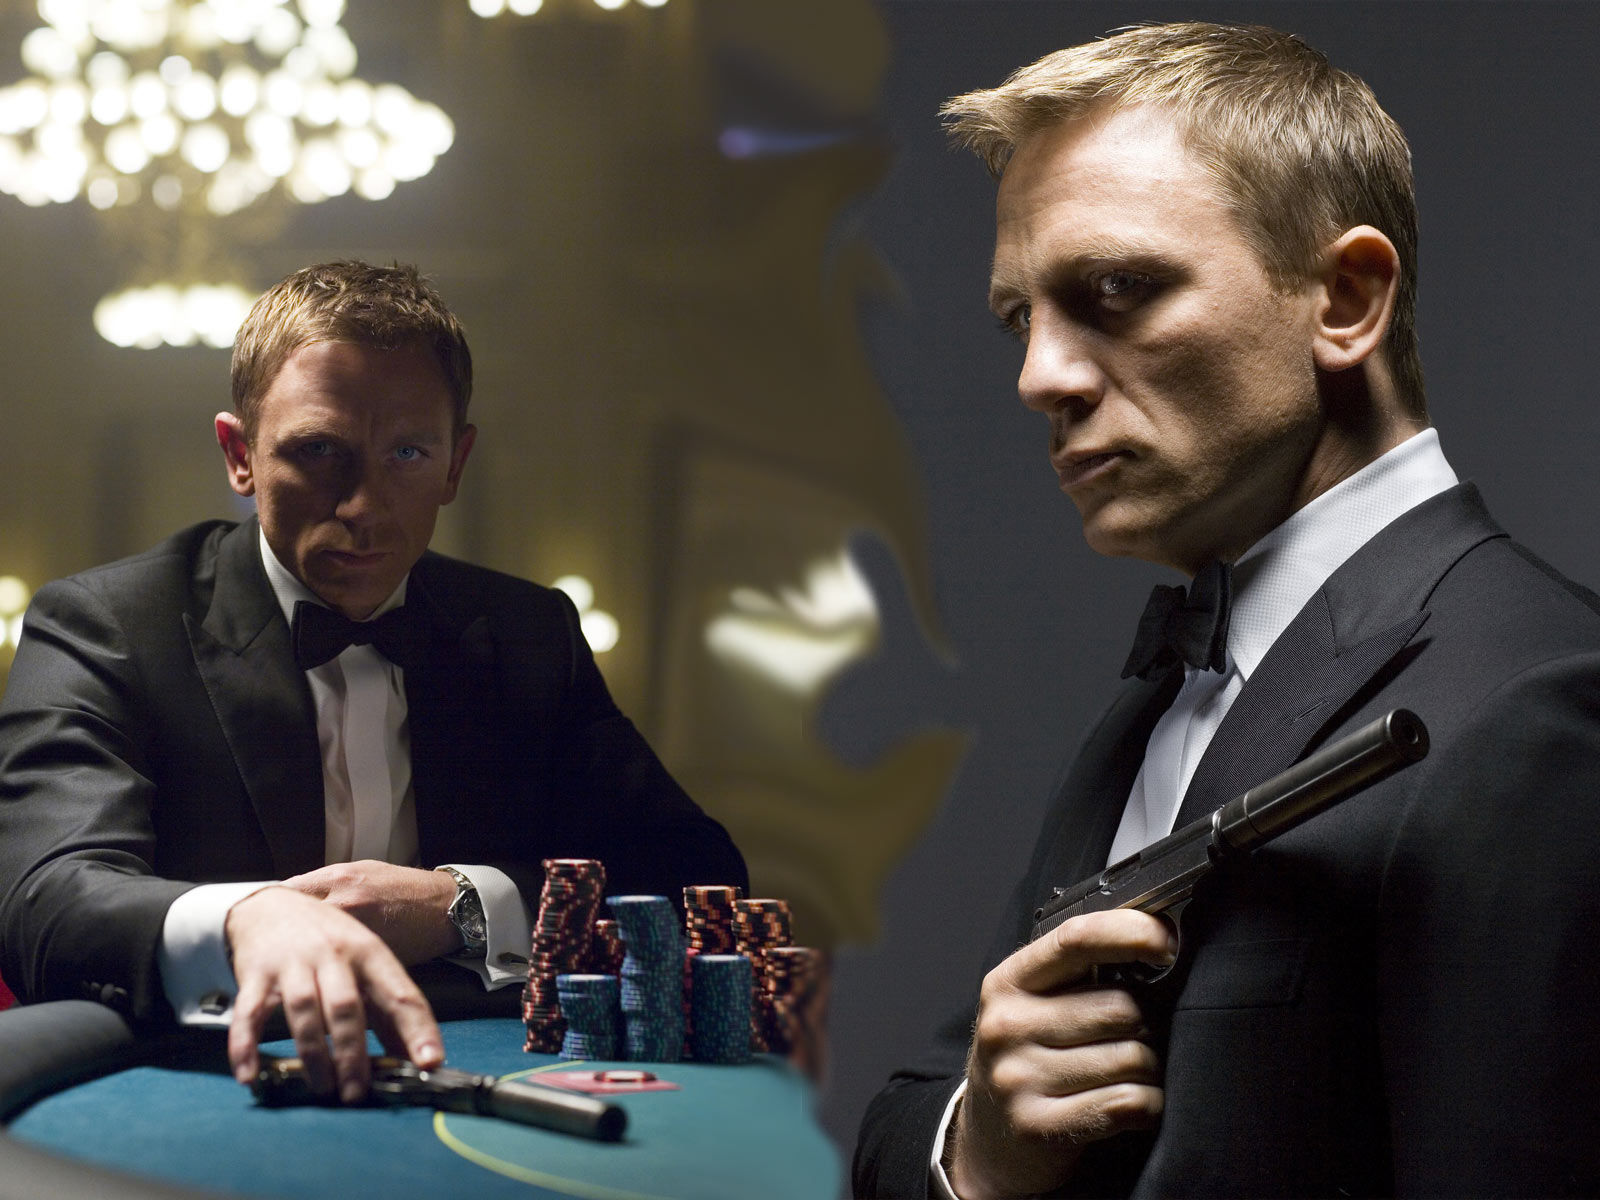 james bond casino royale coursework James bond casino royale coursework casino royale essay in ian fleming's casino royale, james bond is involved in a baccarat game that can be.